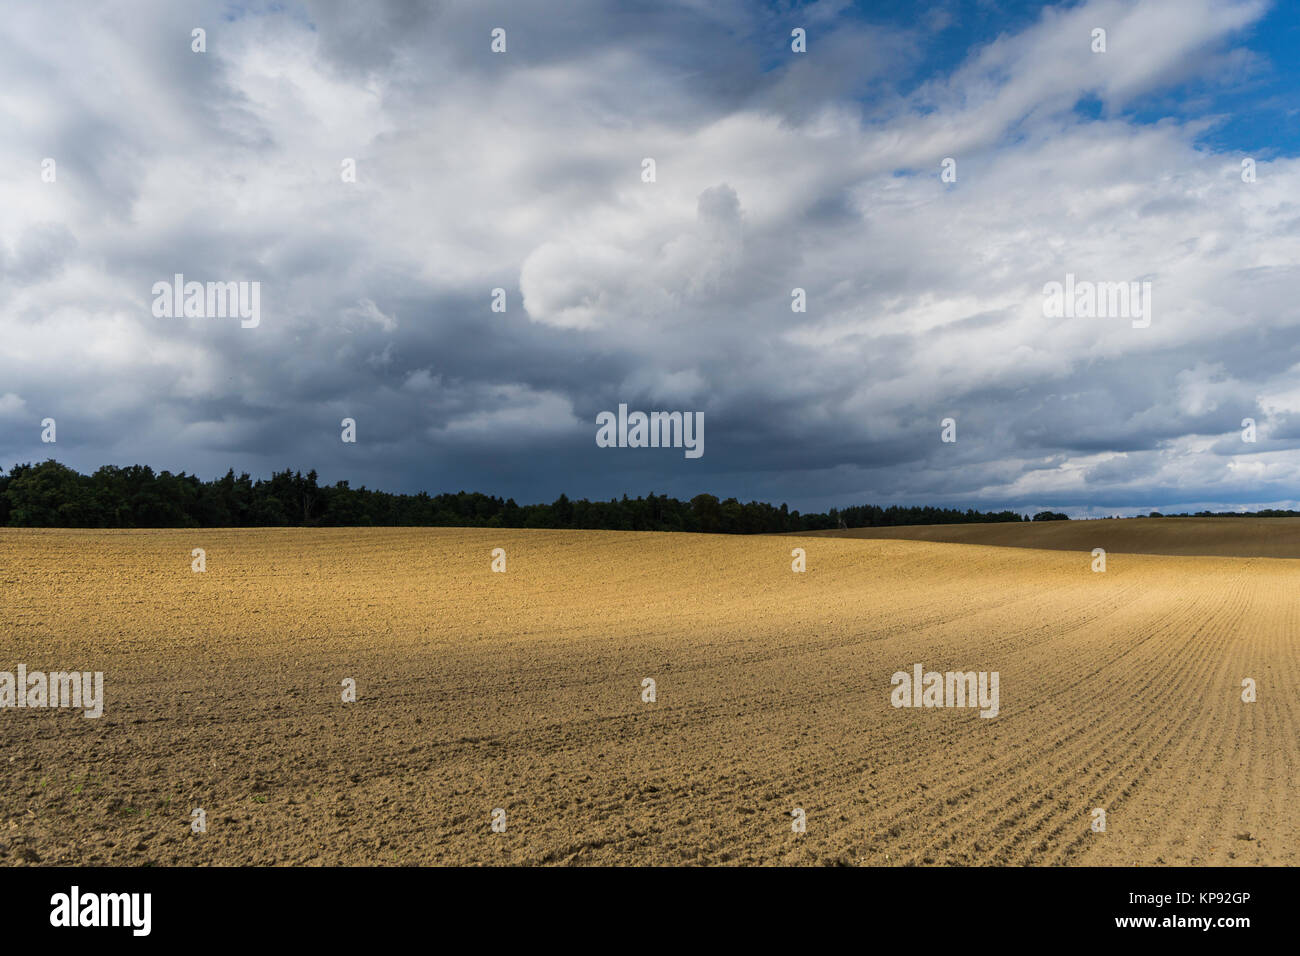 straw bales in a field in the warm sunlight with drawing,dark clouds Stock Photo